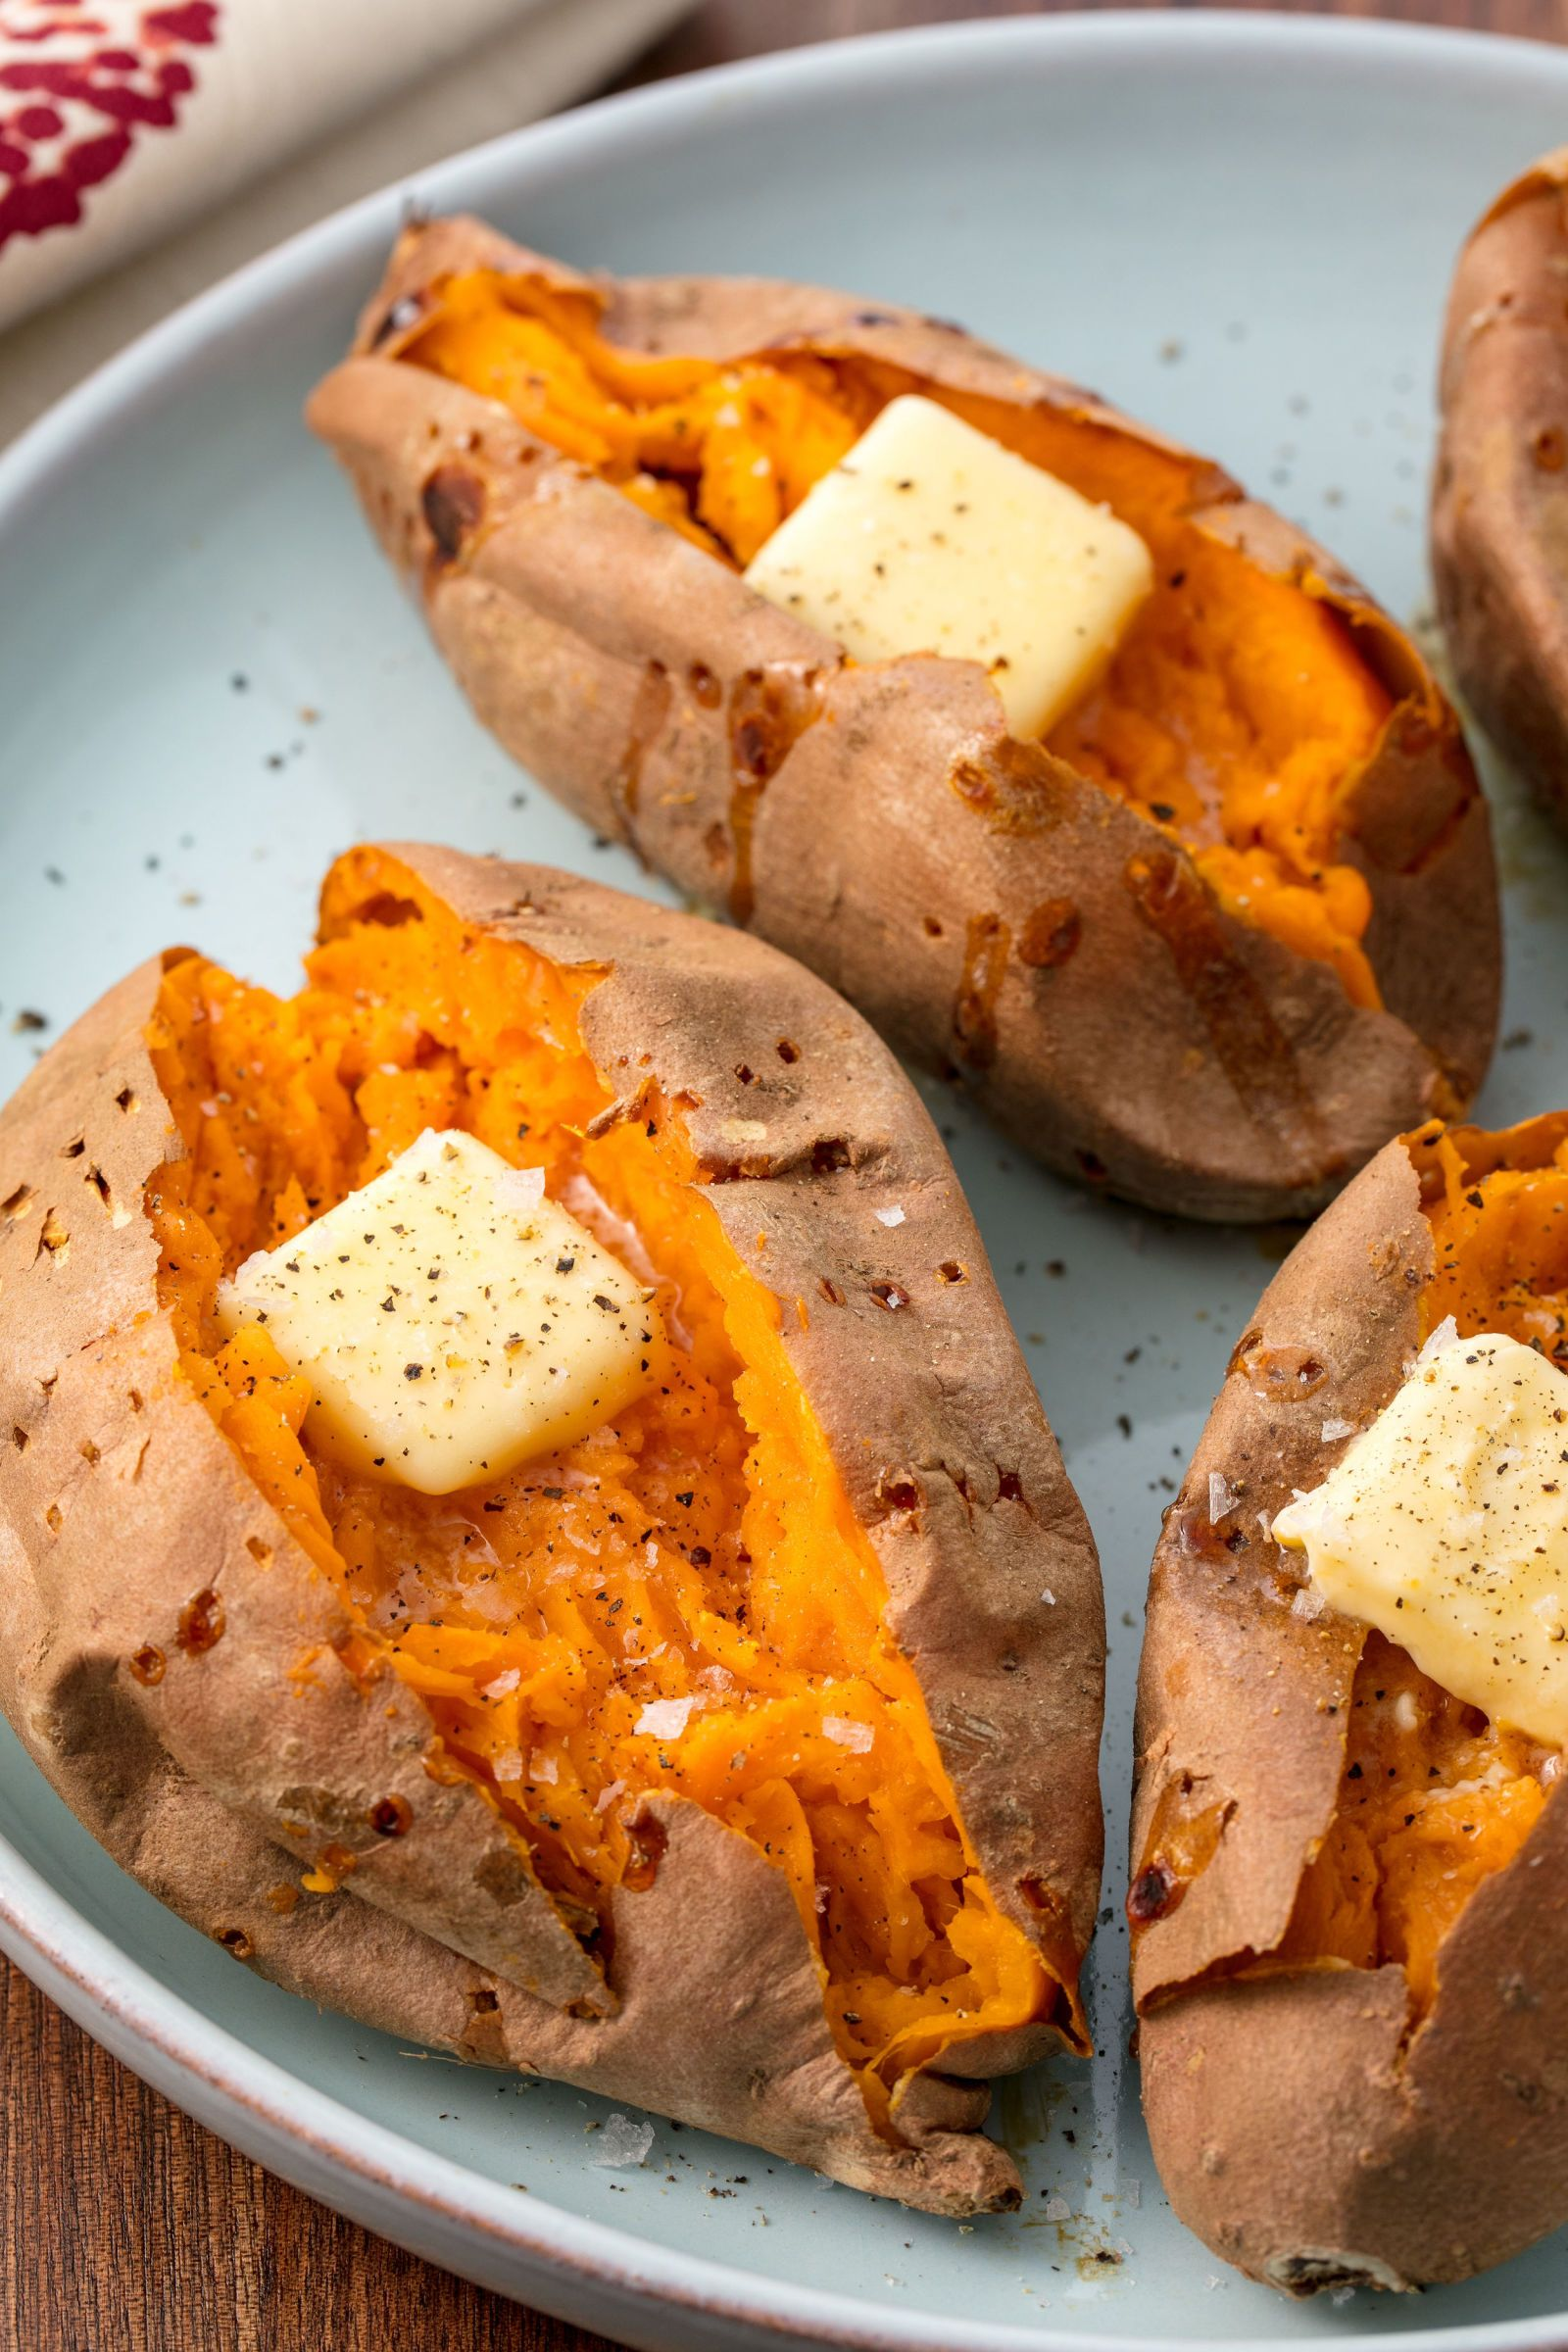 Fast And Filling Baked Potato Recipes For Easy Dinners And Sides Sweet Potato Recipes Baked Cooking Sweet Potatoes Perfect Baked Sweet Potato